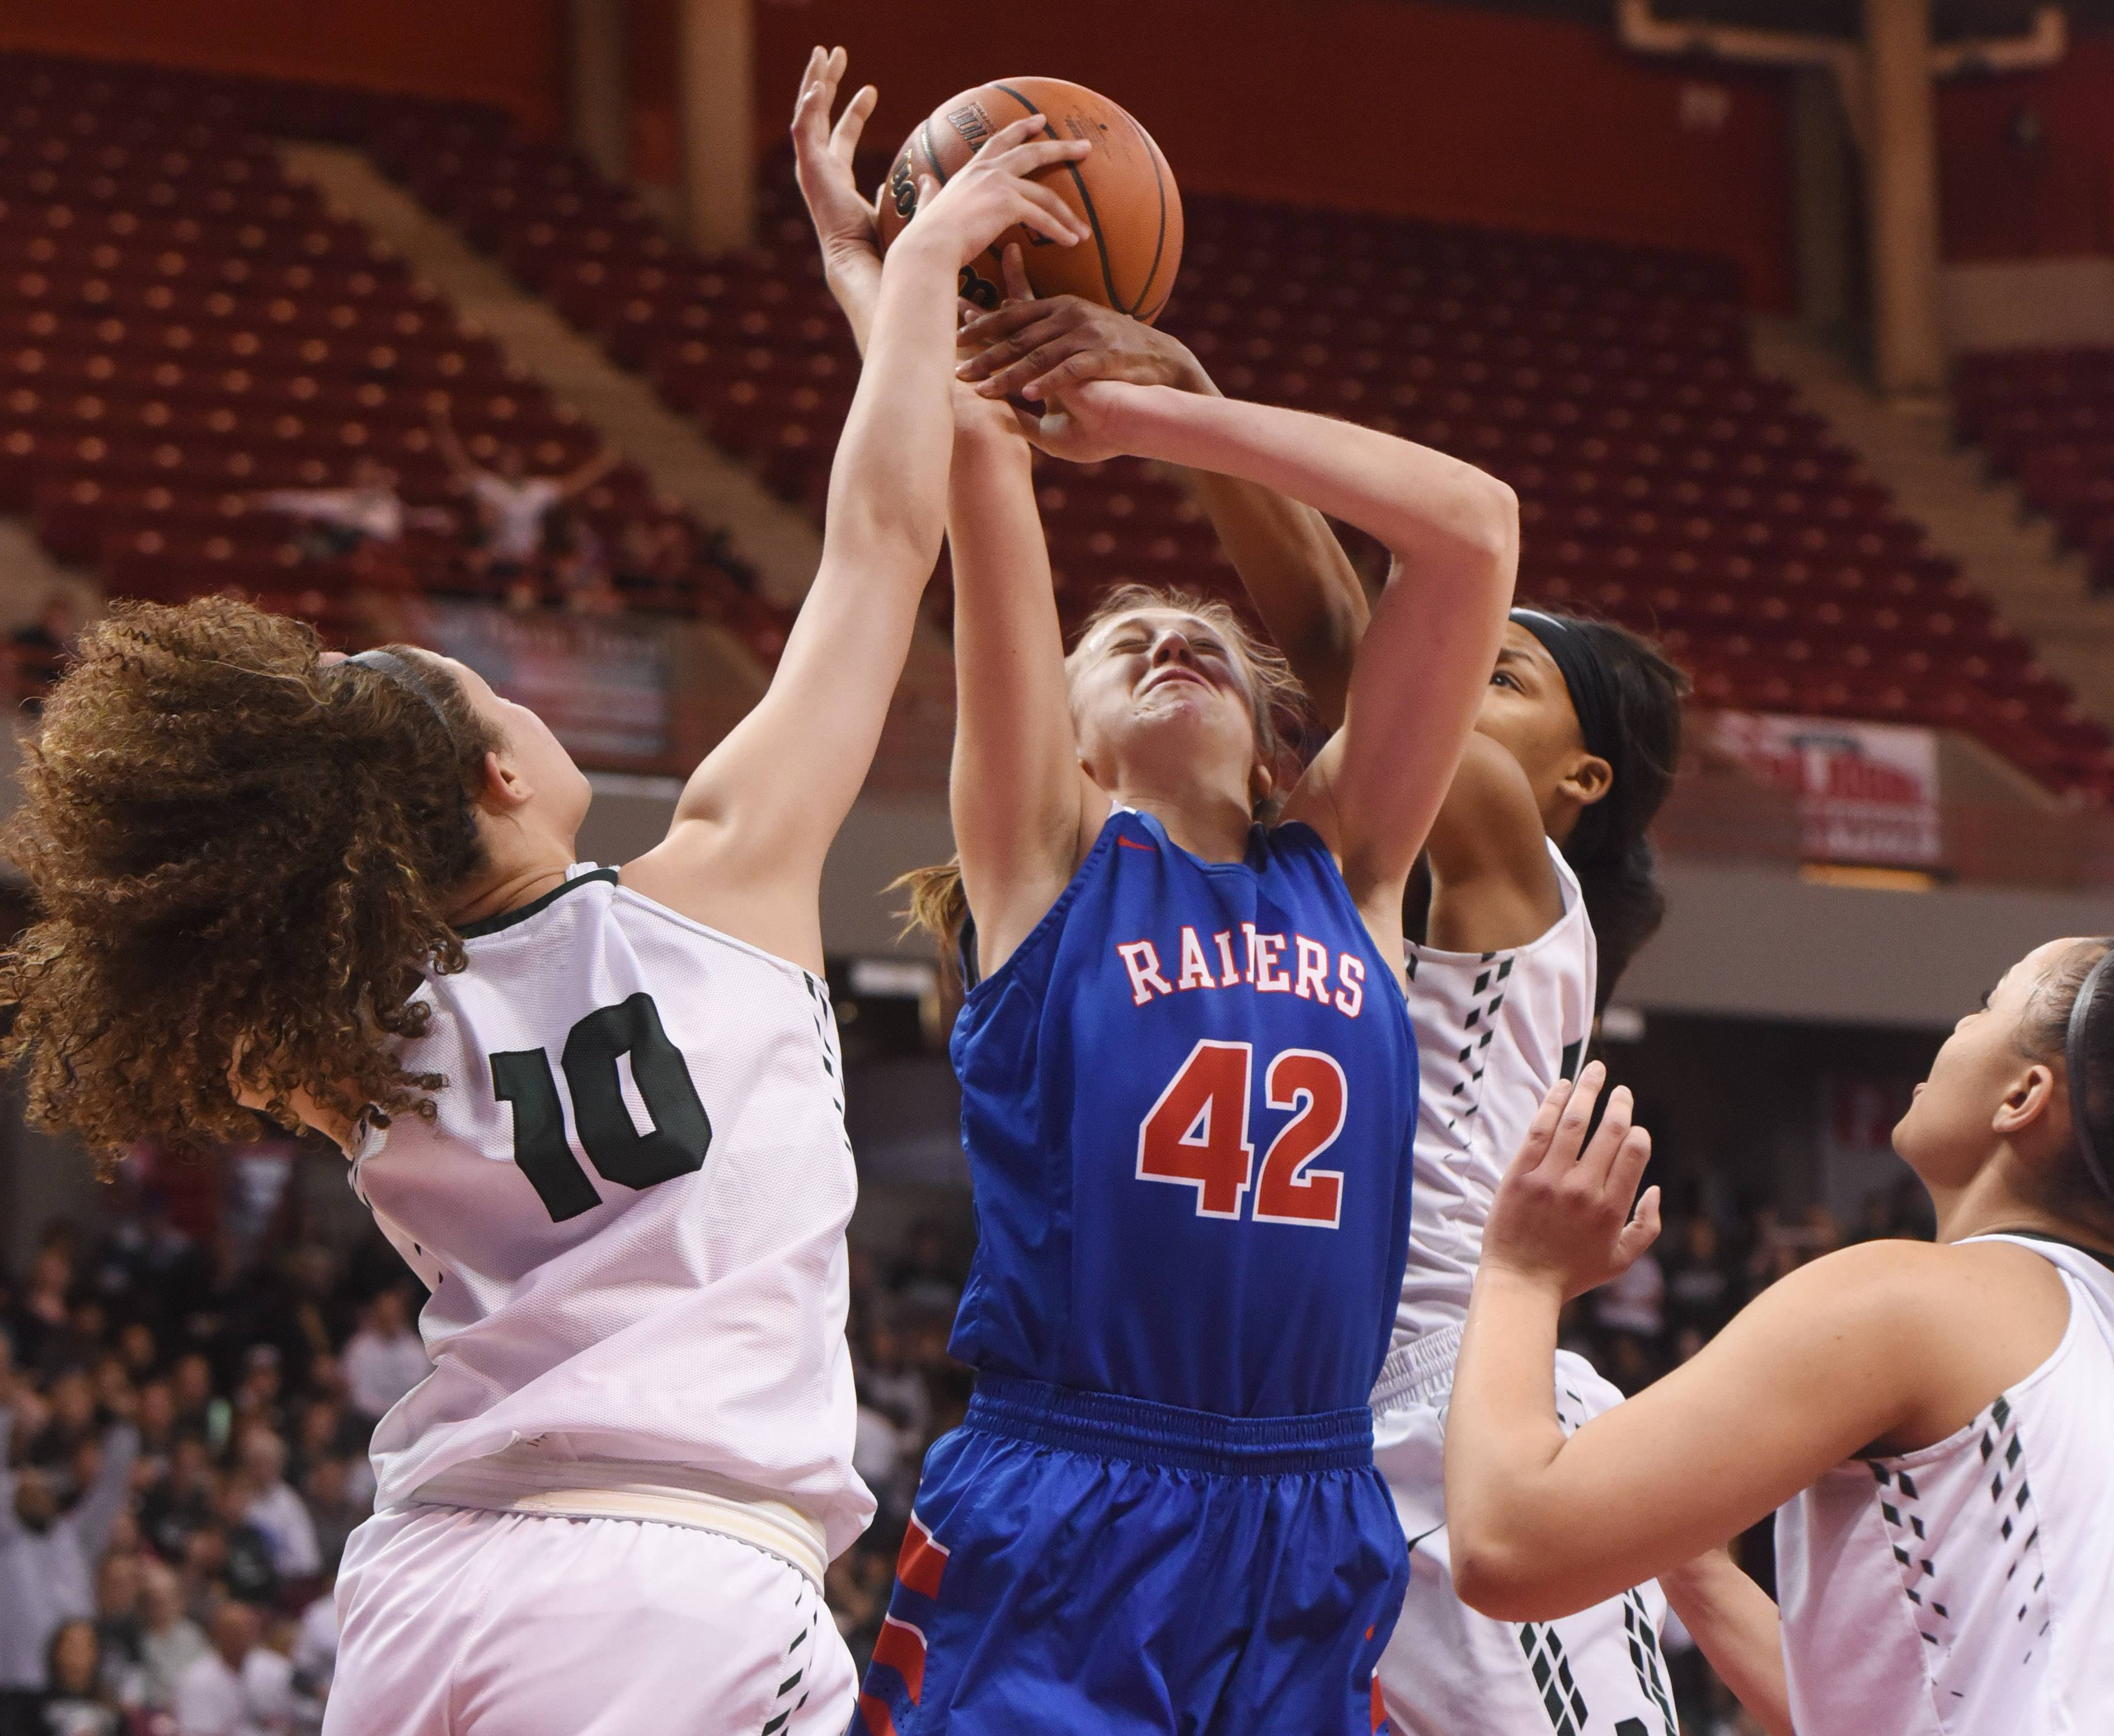 Glenbard South's Maggie Bair draws contact as she encounters Peoria Richwoods' Tianna Johnson, left, Kourtney Crane and Mariah Hopson, right, under the basket during the Class 3A girls basketball semifinal at Redbird Arena in Normal Friday.